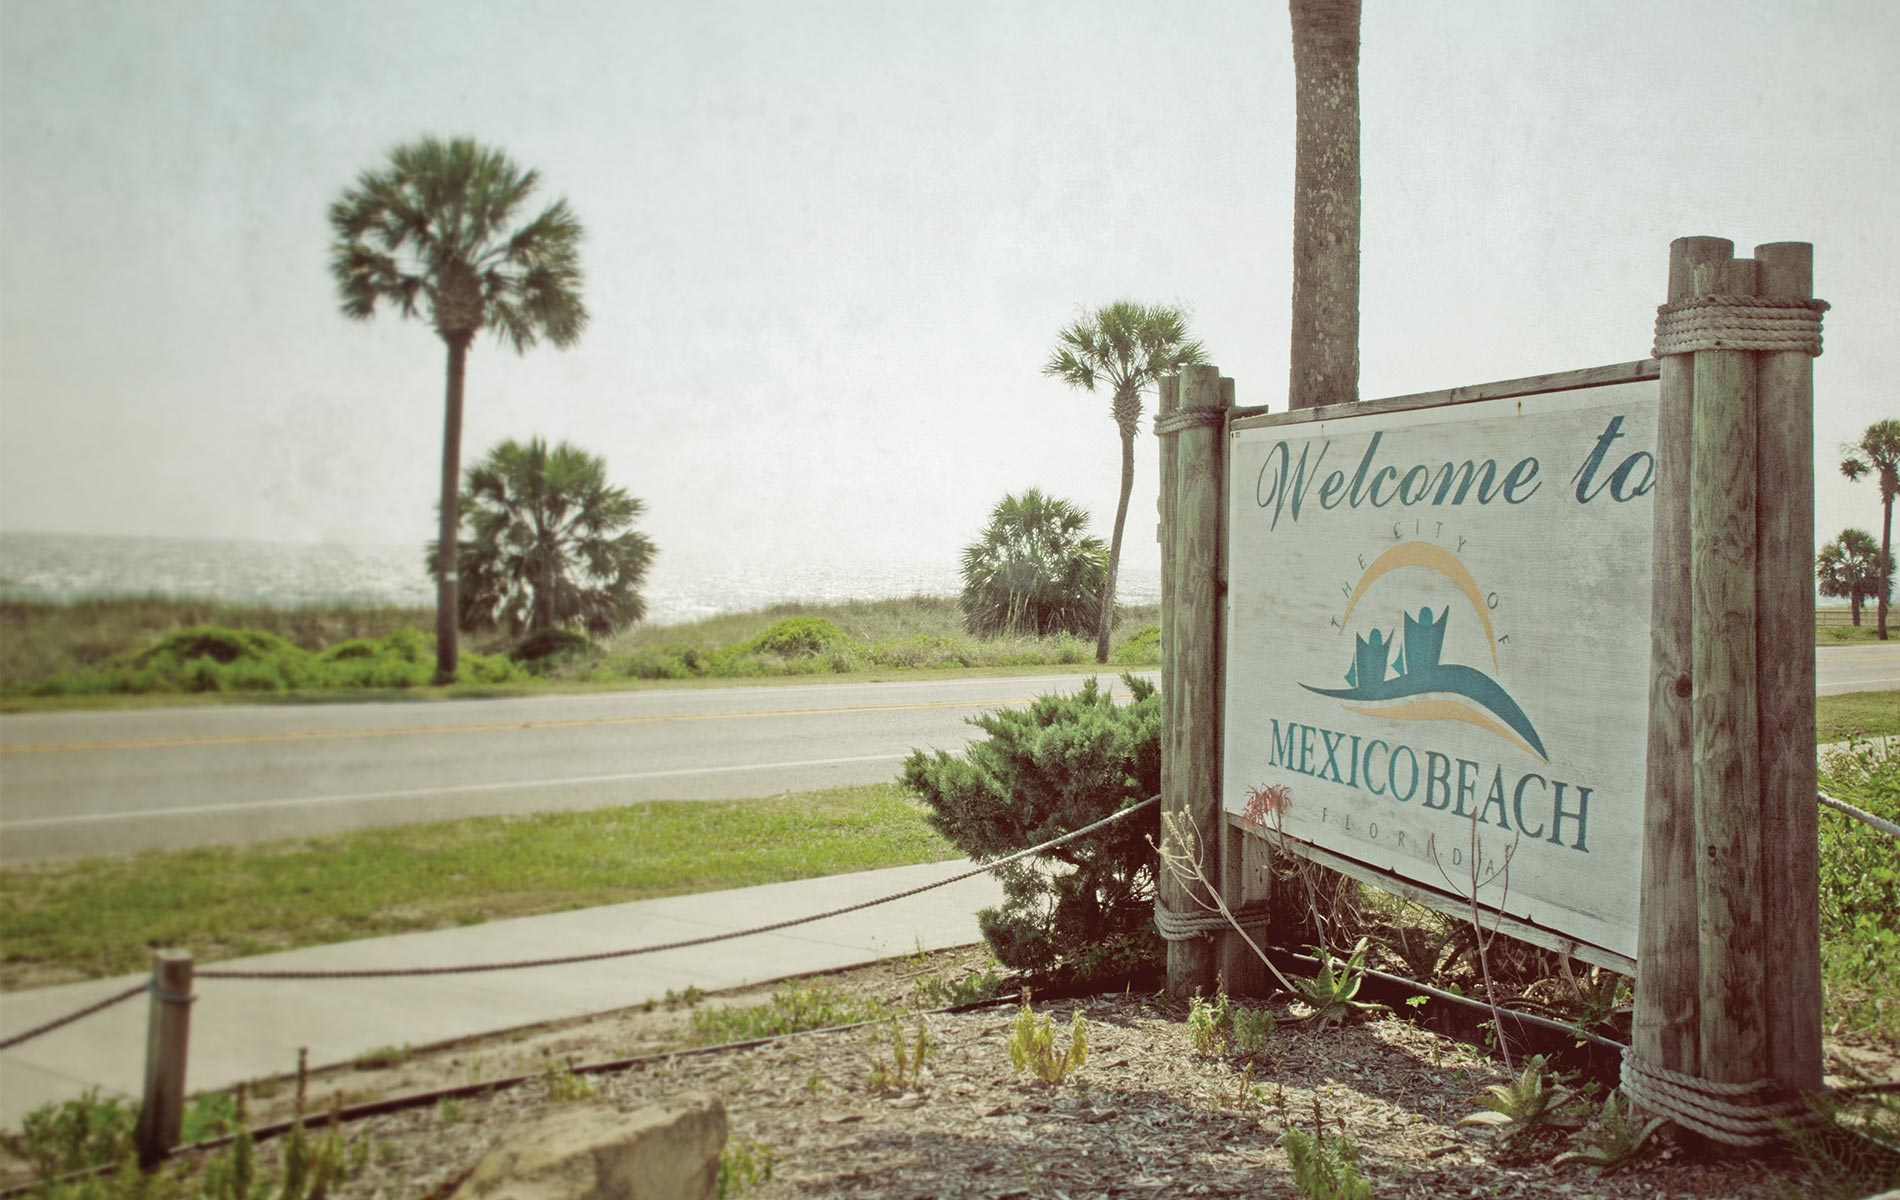 Welcome to Mexico Beach sign